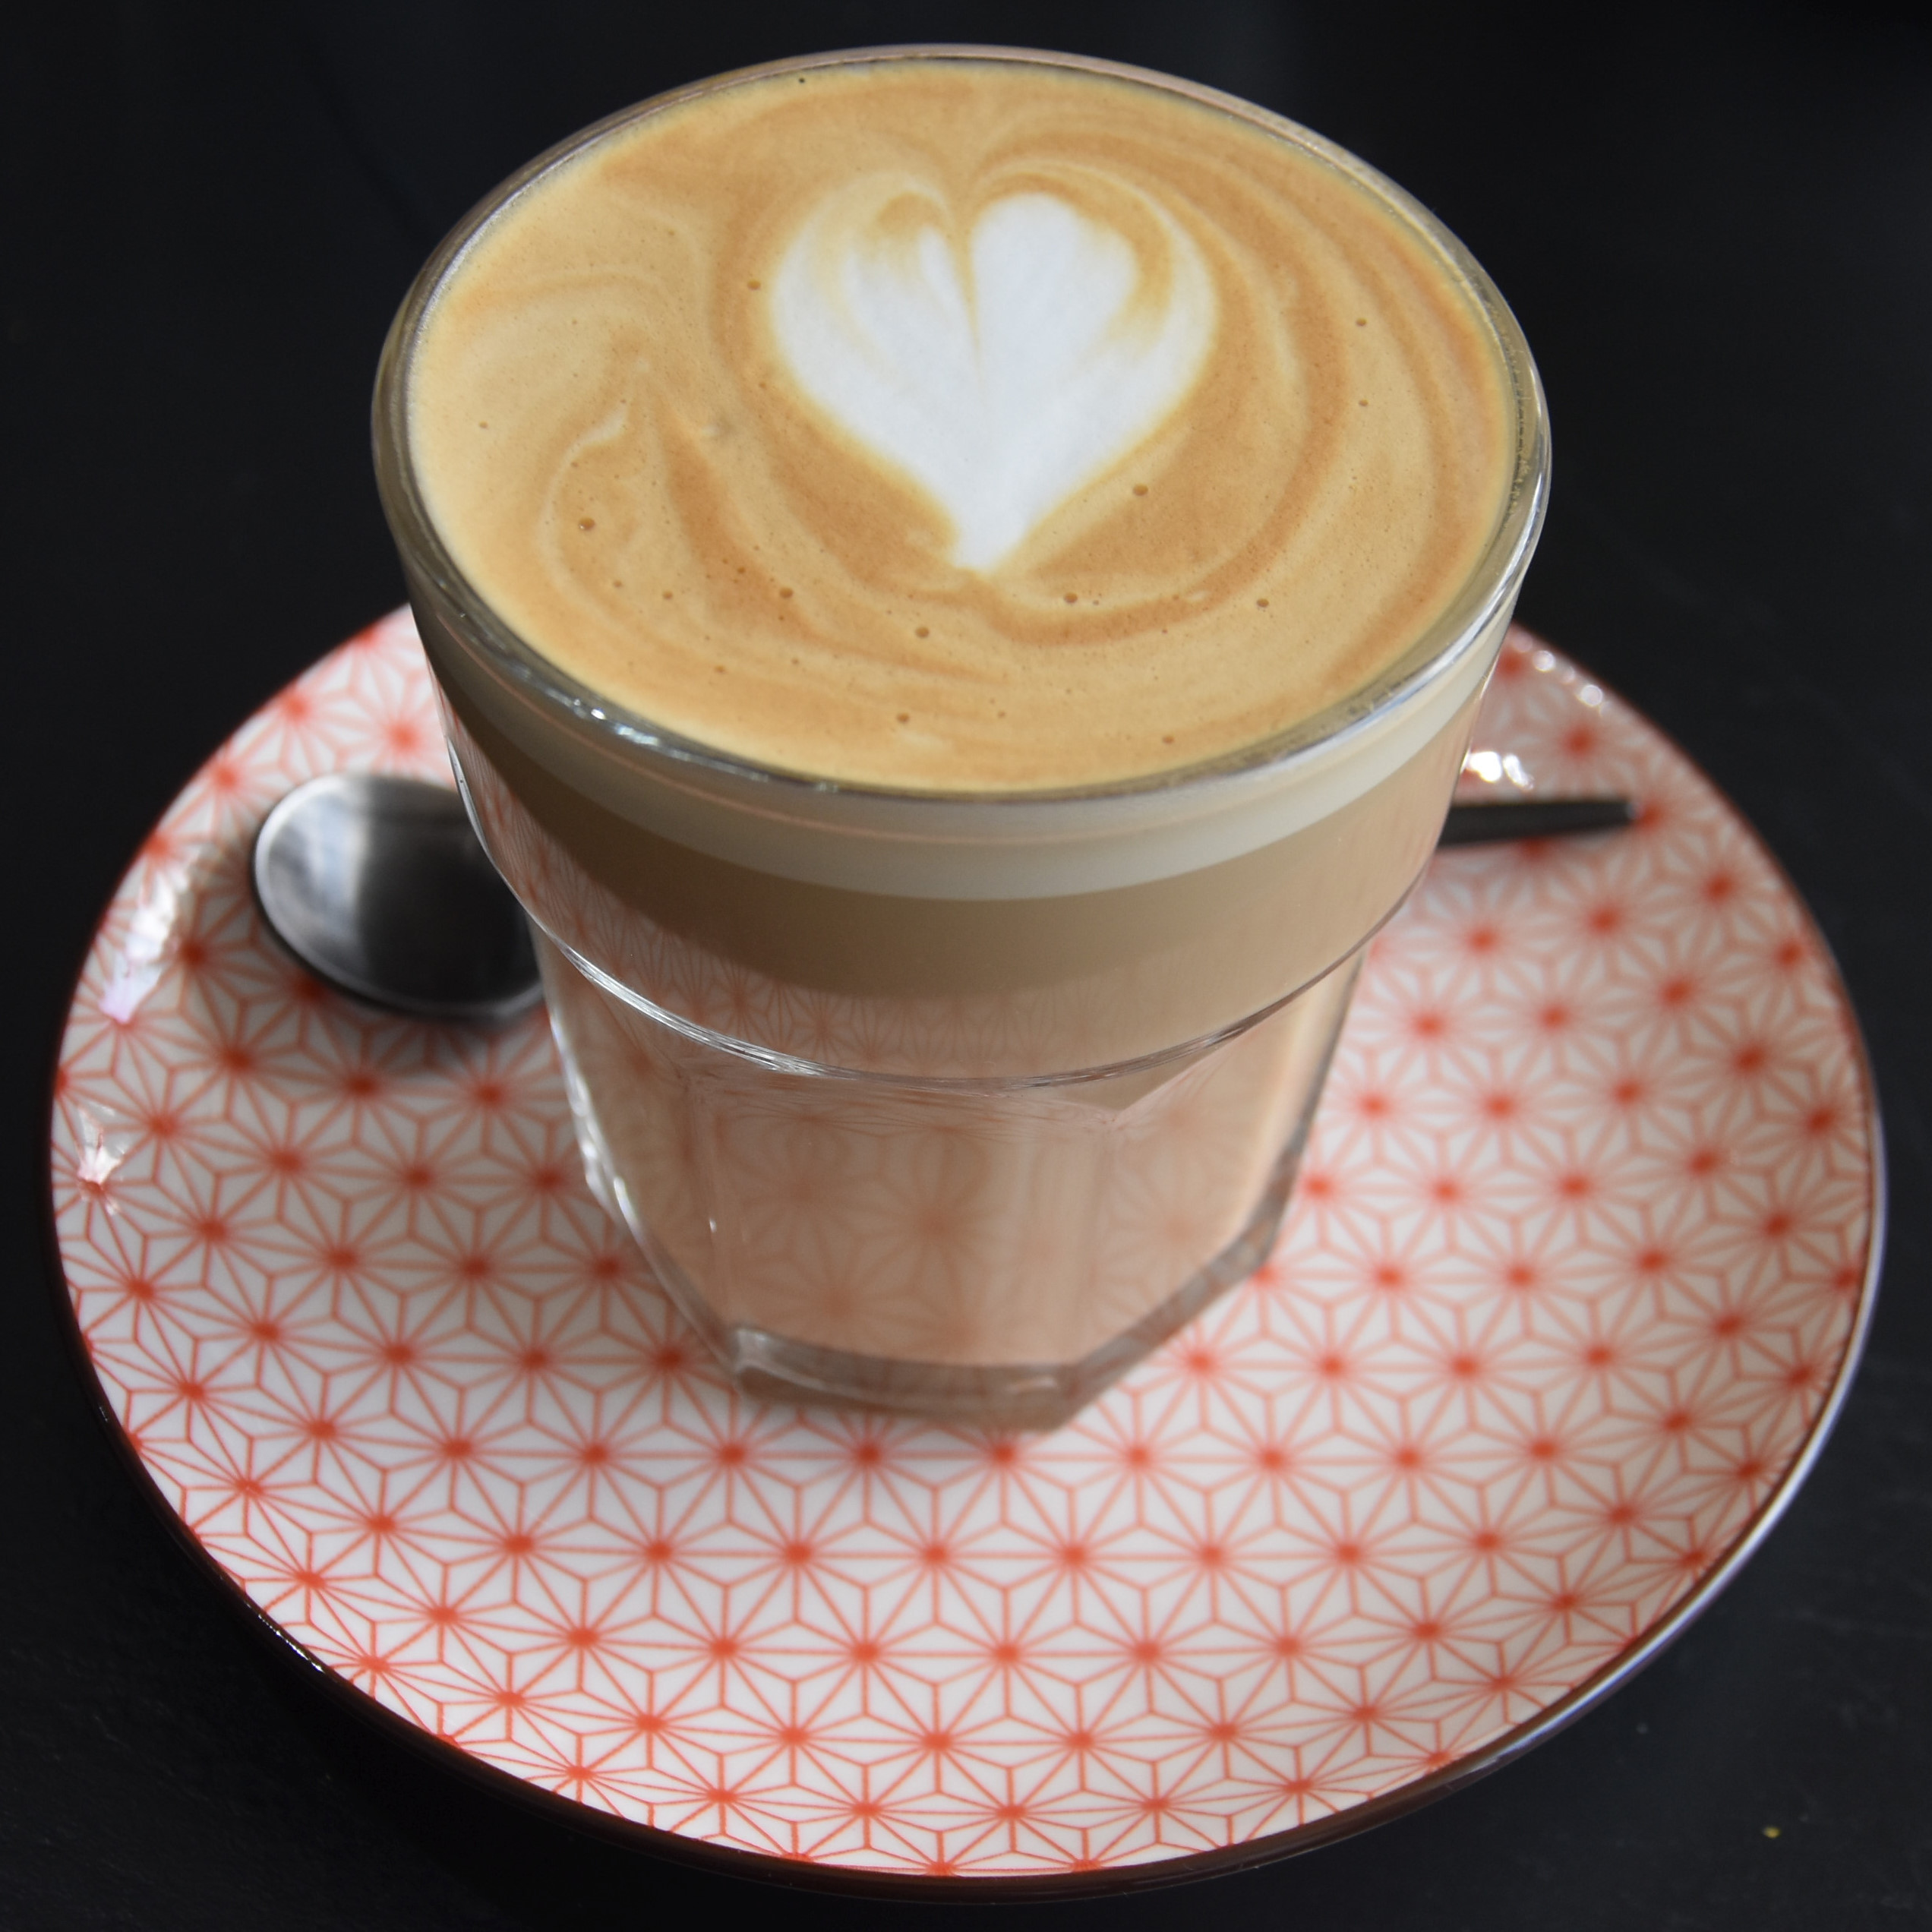 A lovely flat white, made with the Trio blend from Crosby Coffee and served in a glass on a geometrically patterned saucer at Ginger Monkey in Chester.